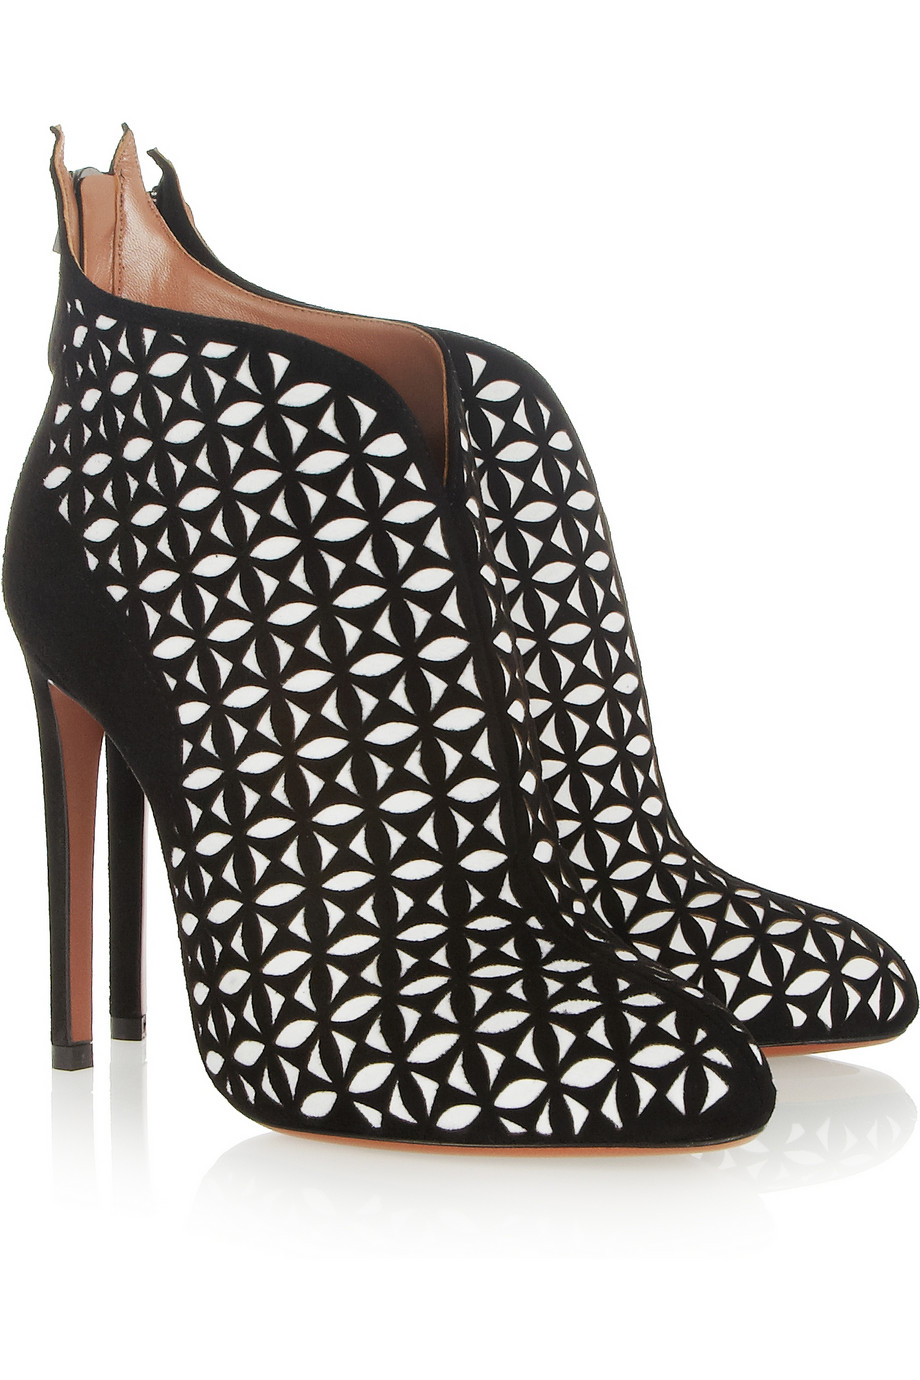 Shoe Of The Day Alaia Laser Cut Suede Ankle Boots